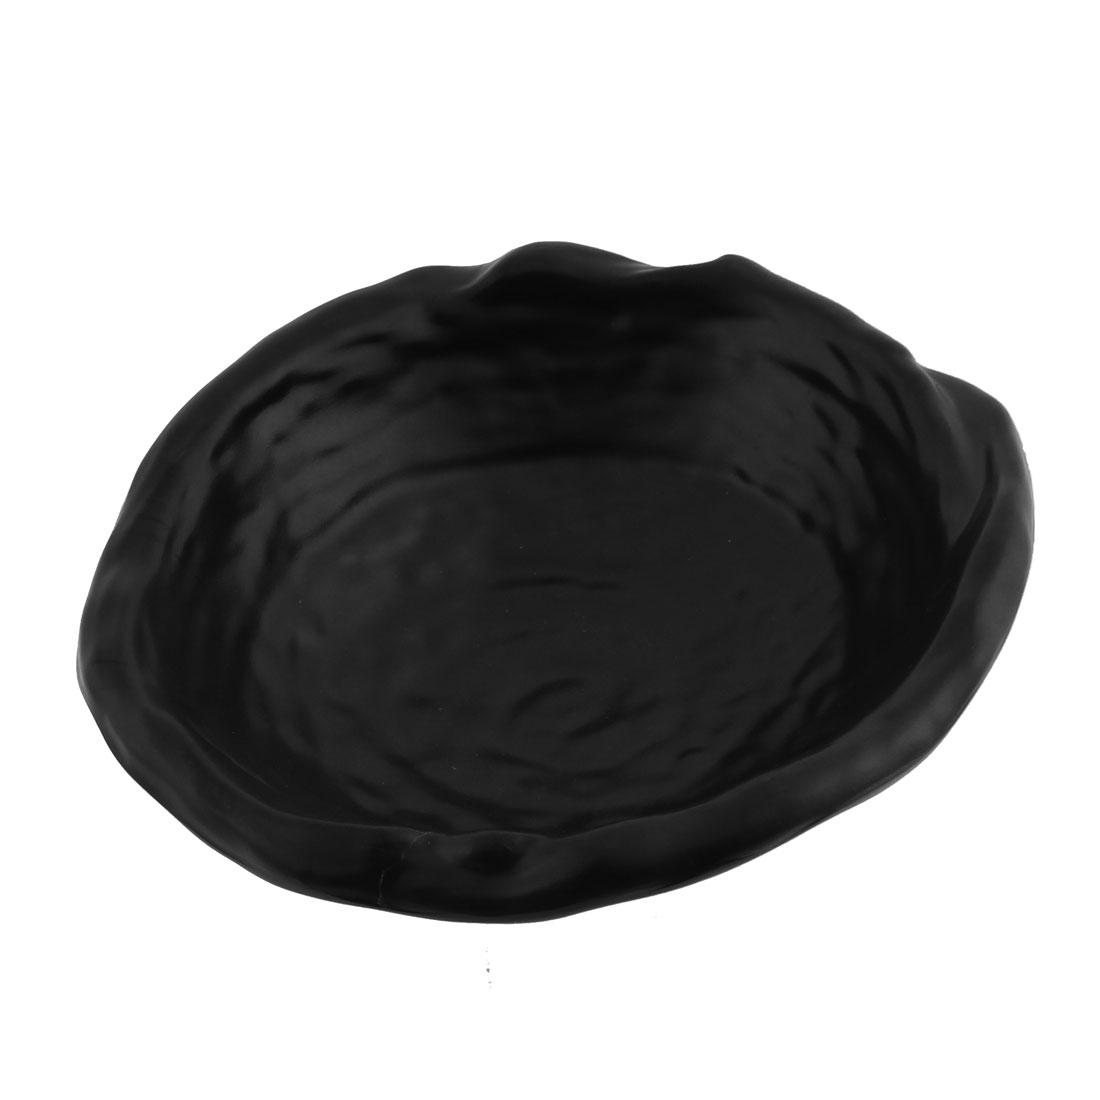 Japanese Style Plastic Oval Shaped Food Bowl Dish Plate Tableware Black